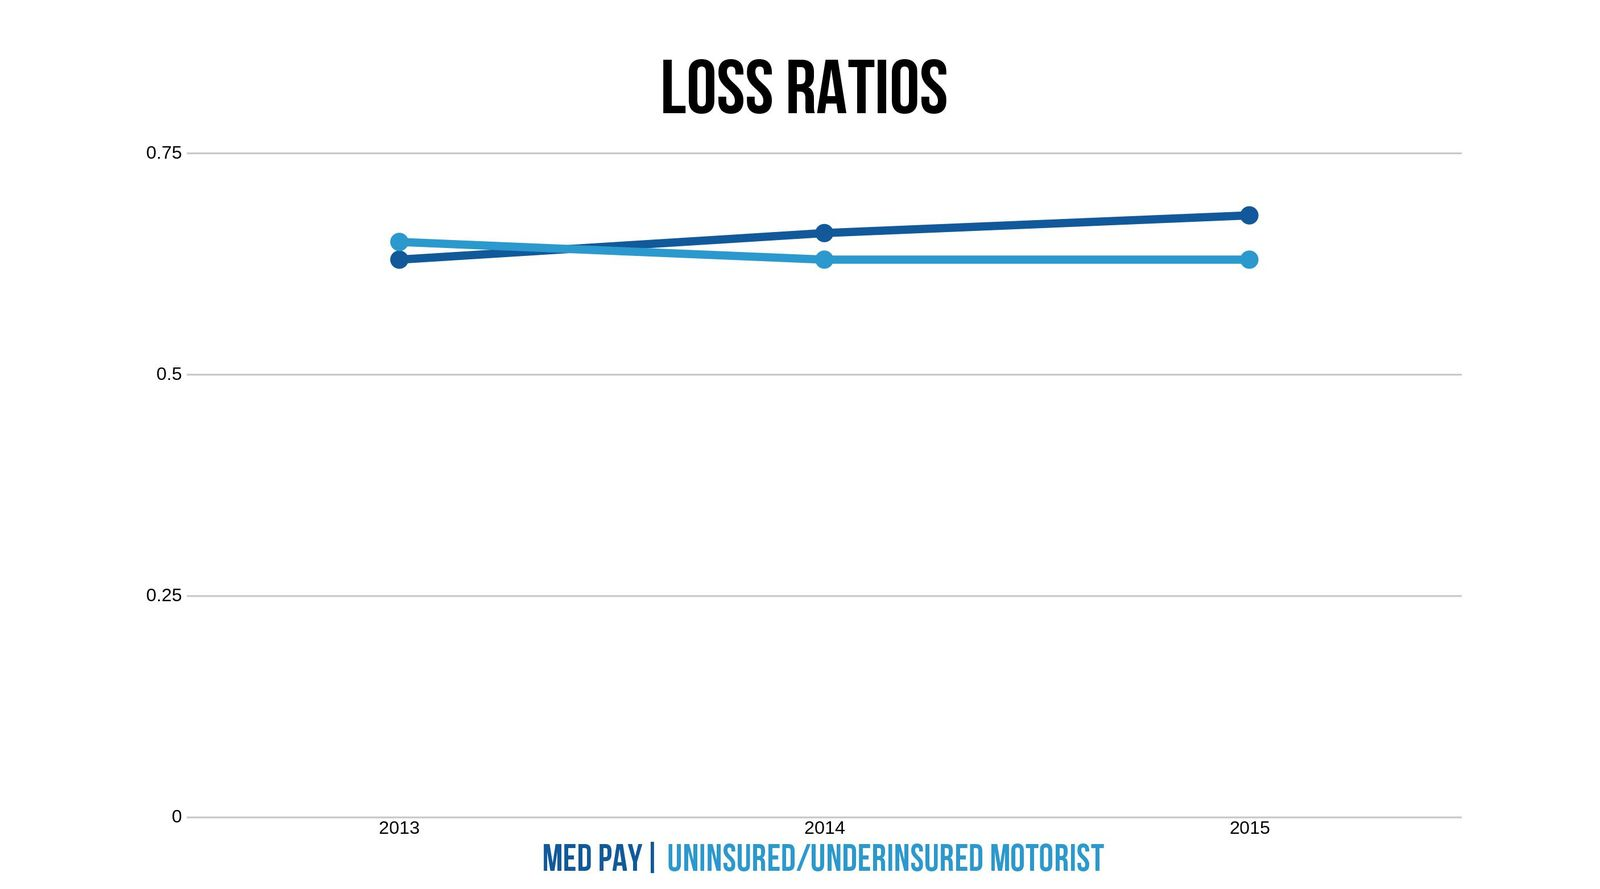 Oklahoma loss ratios UIUM and Med Pay